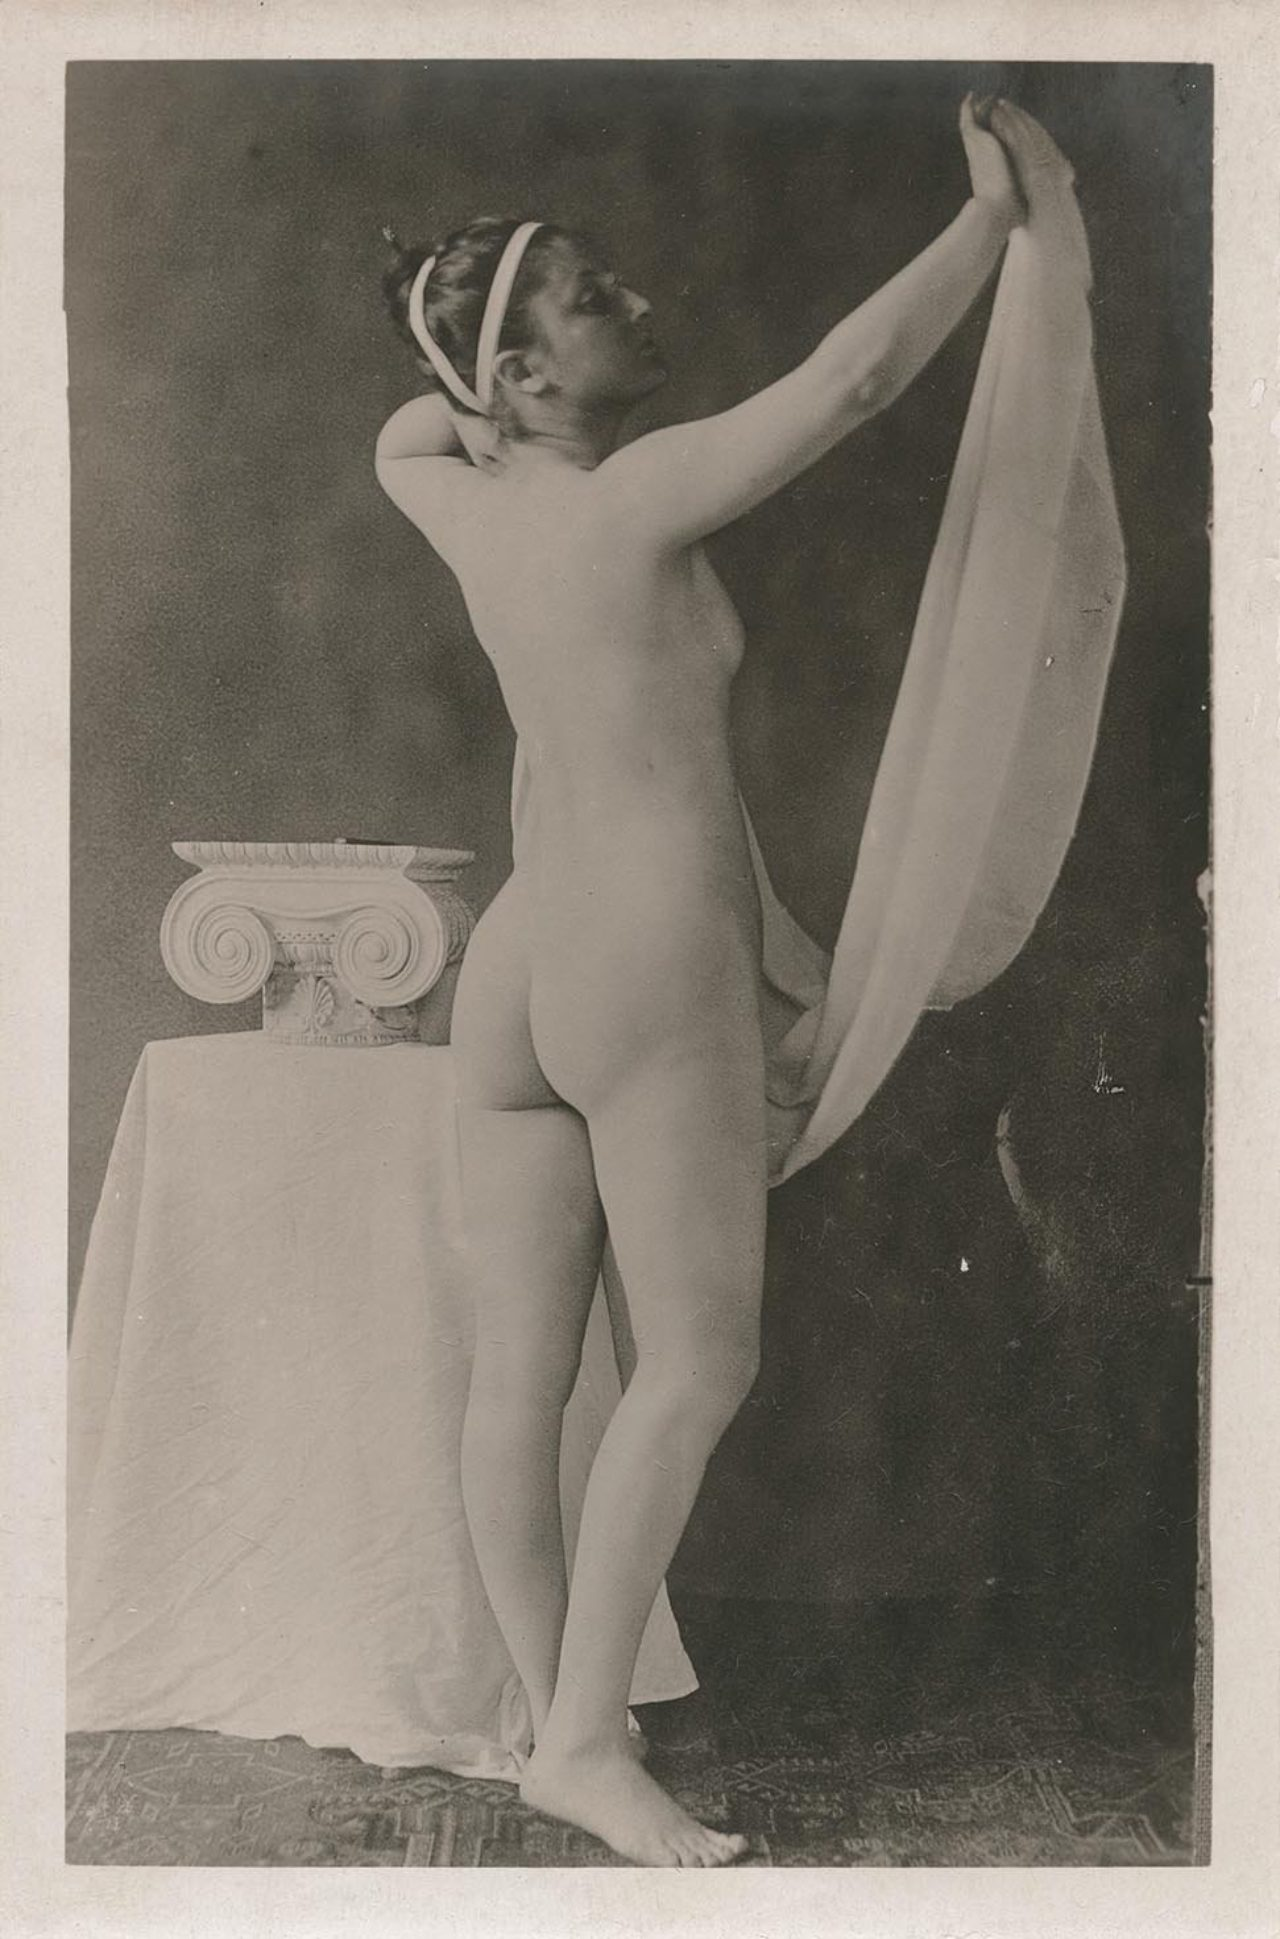 antique photo of a woman at a brothel